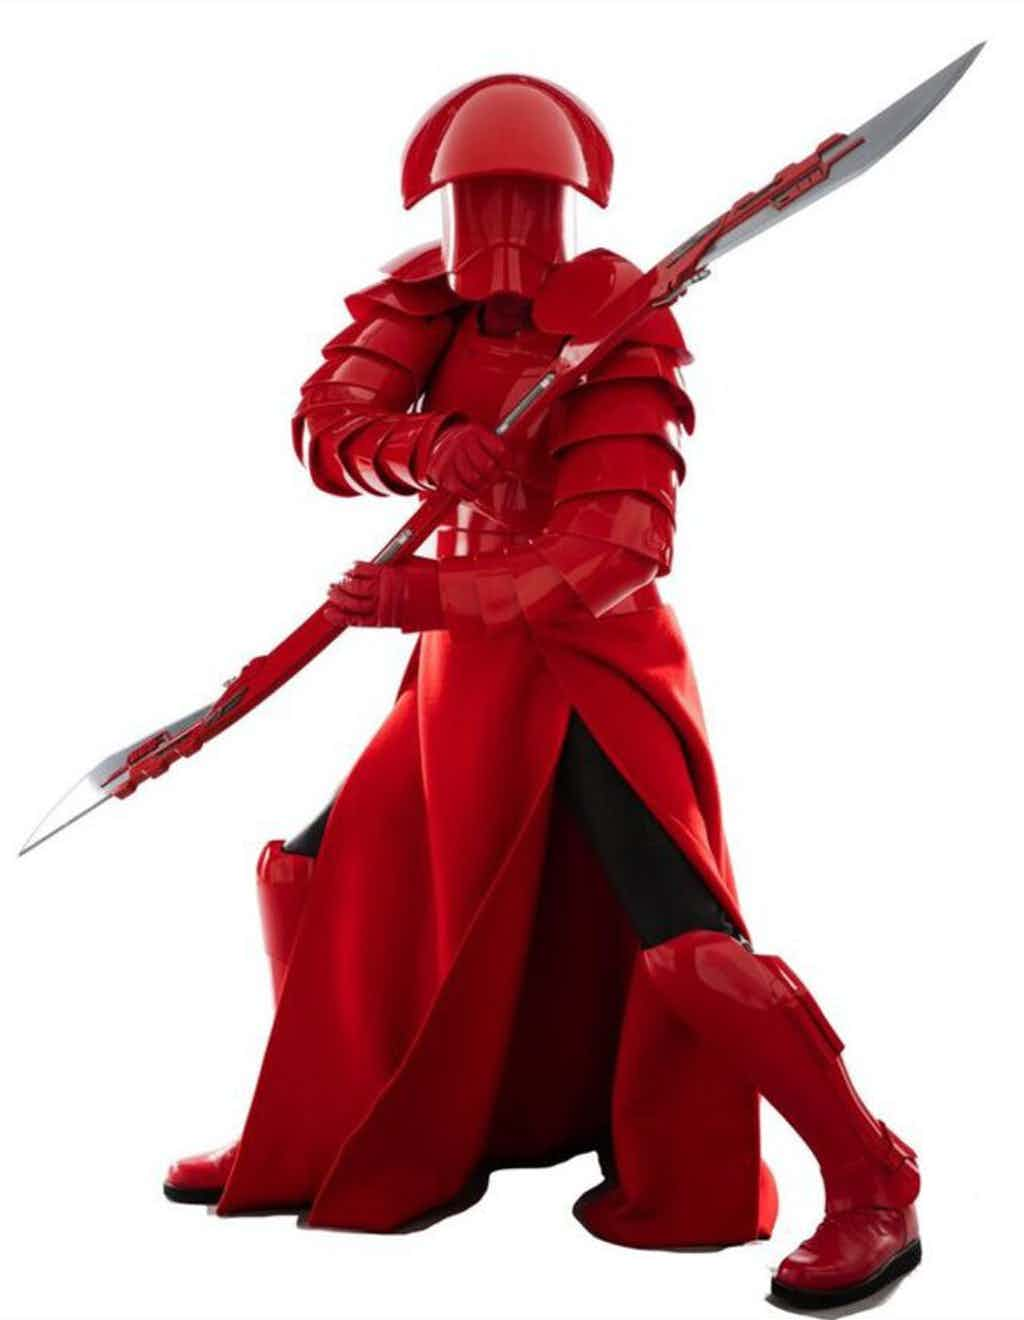 Star-Wars-The-Last-Jedi-Snokes-Royal-Praetorian-Red-Guard-With-Double-Sided-Axe-Sword.jpg